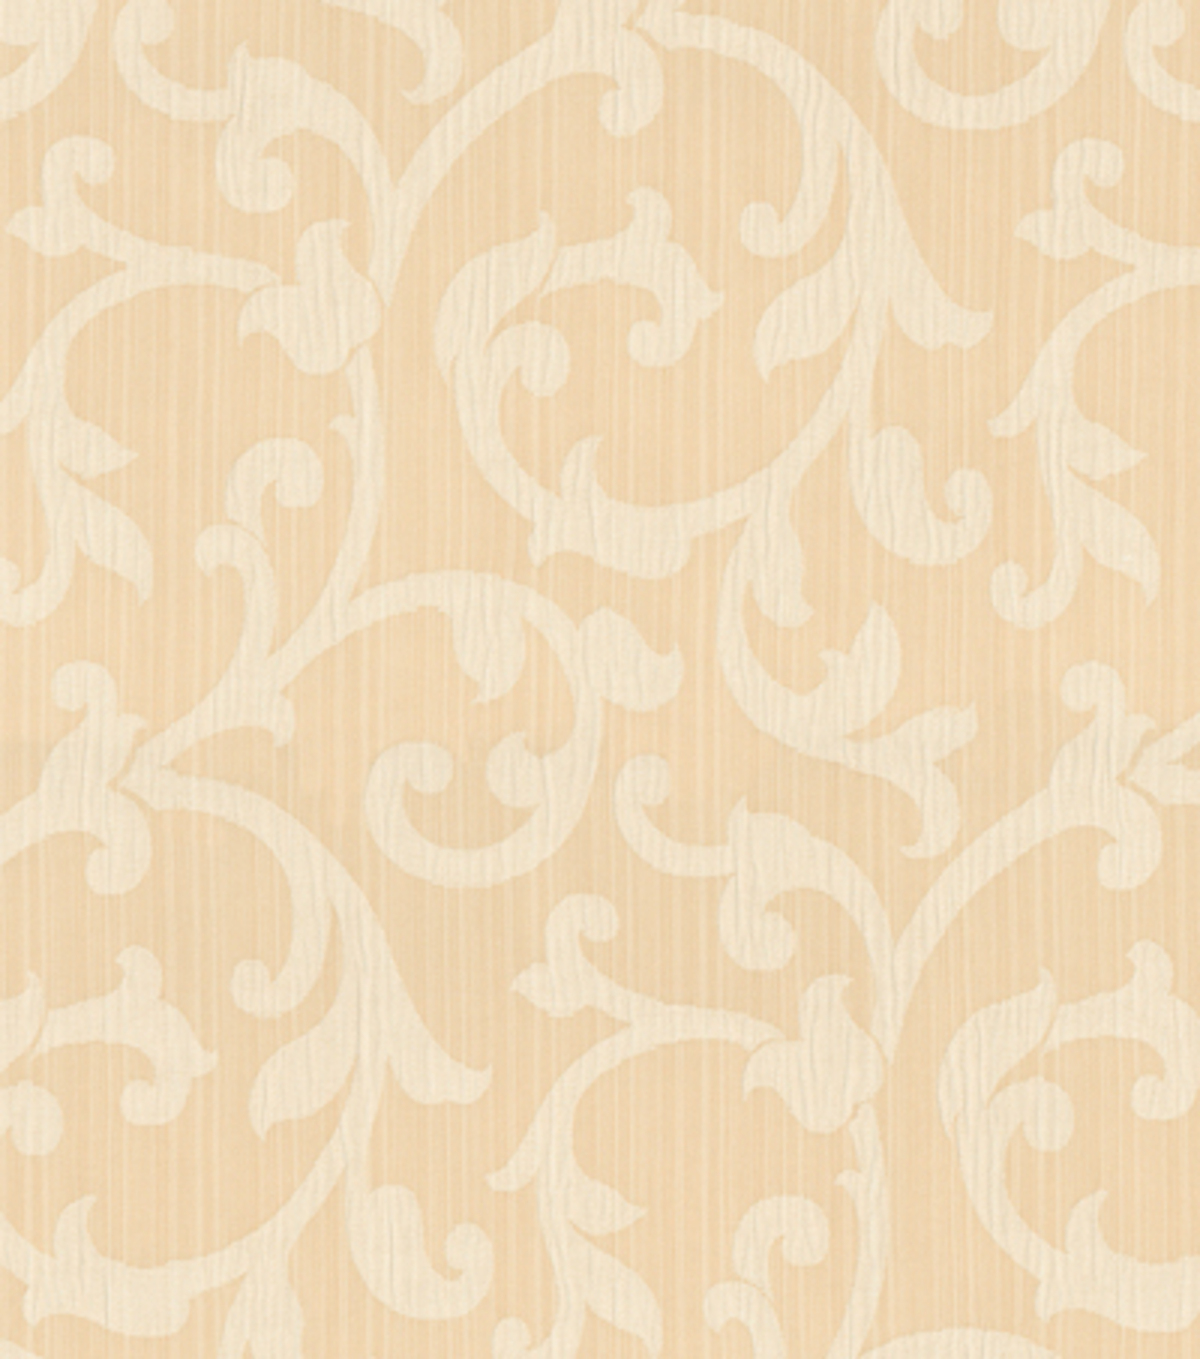 Home Decor 8\u0022x8\u0022 Fabric Swatch-Richloom Studio Bronte Almond